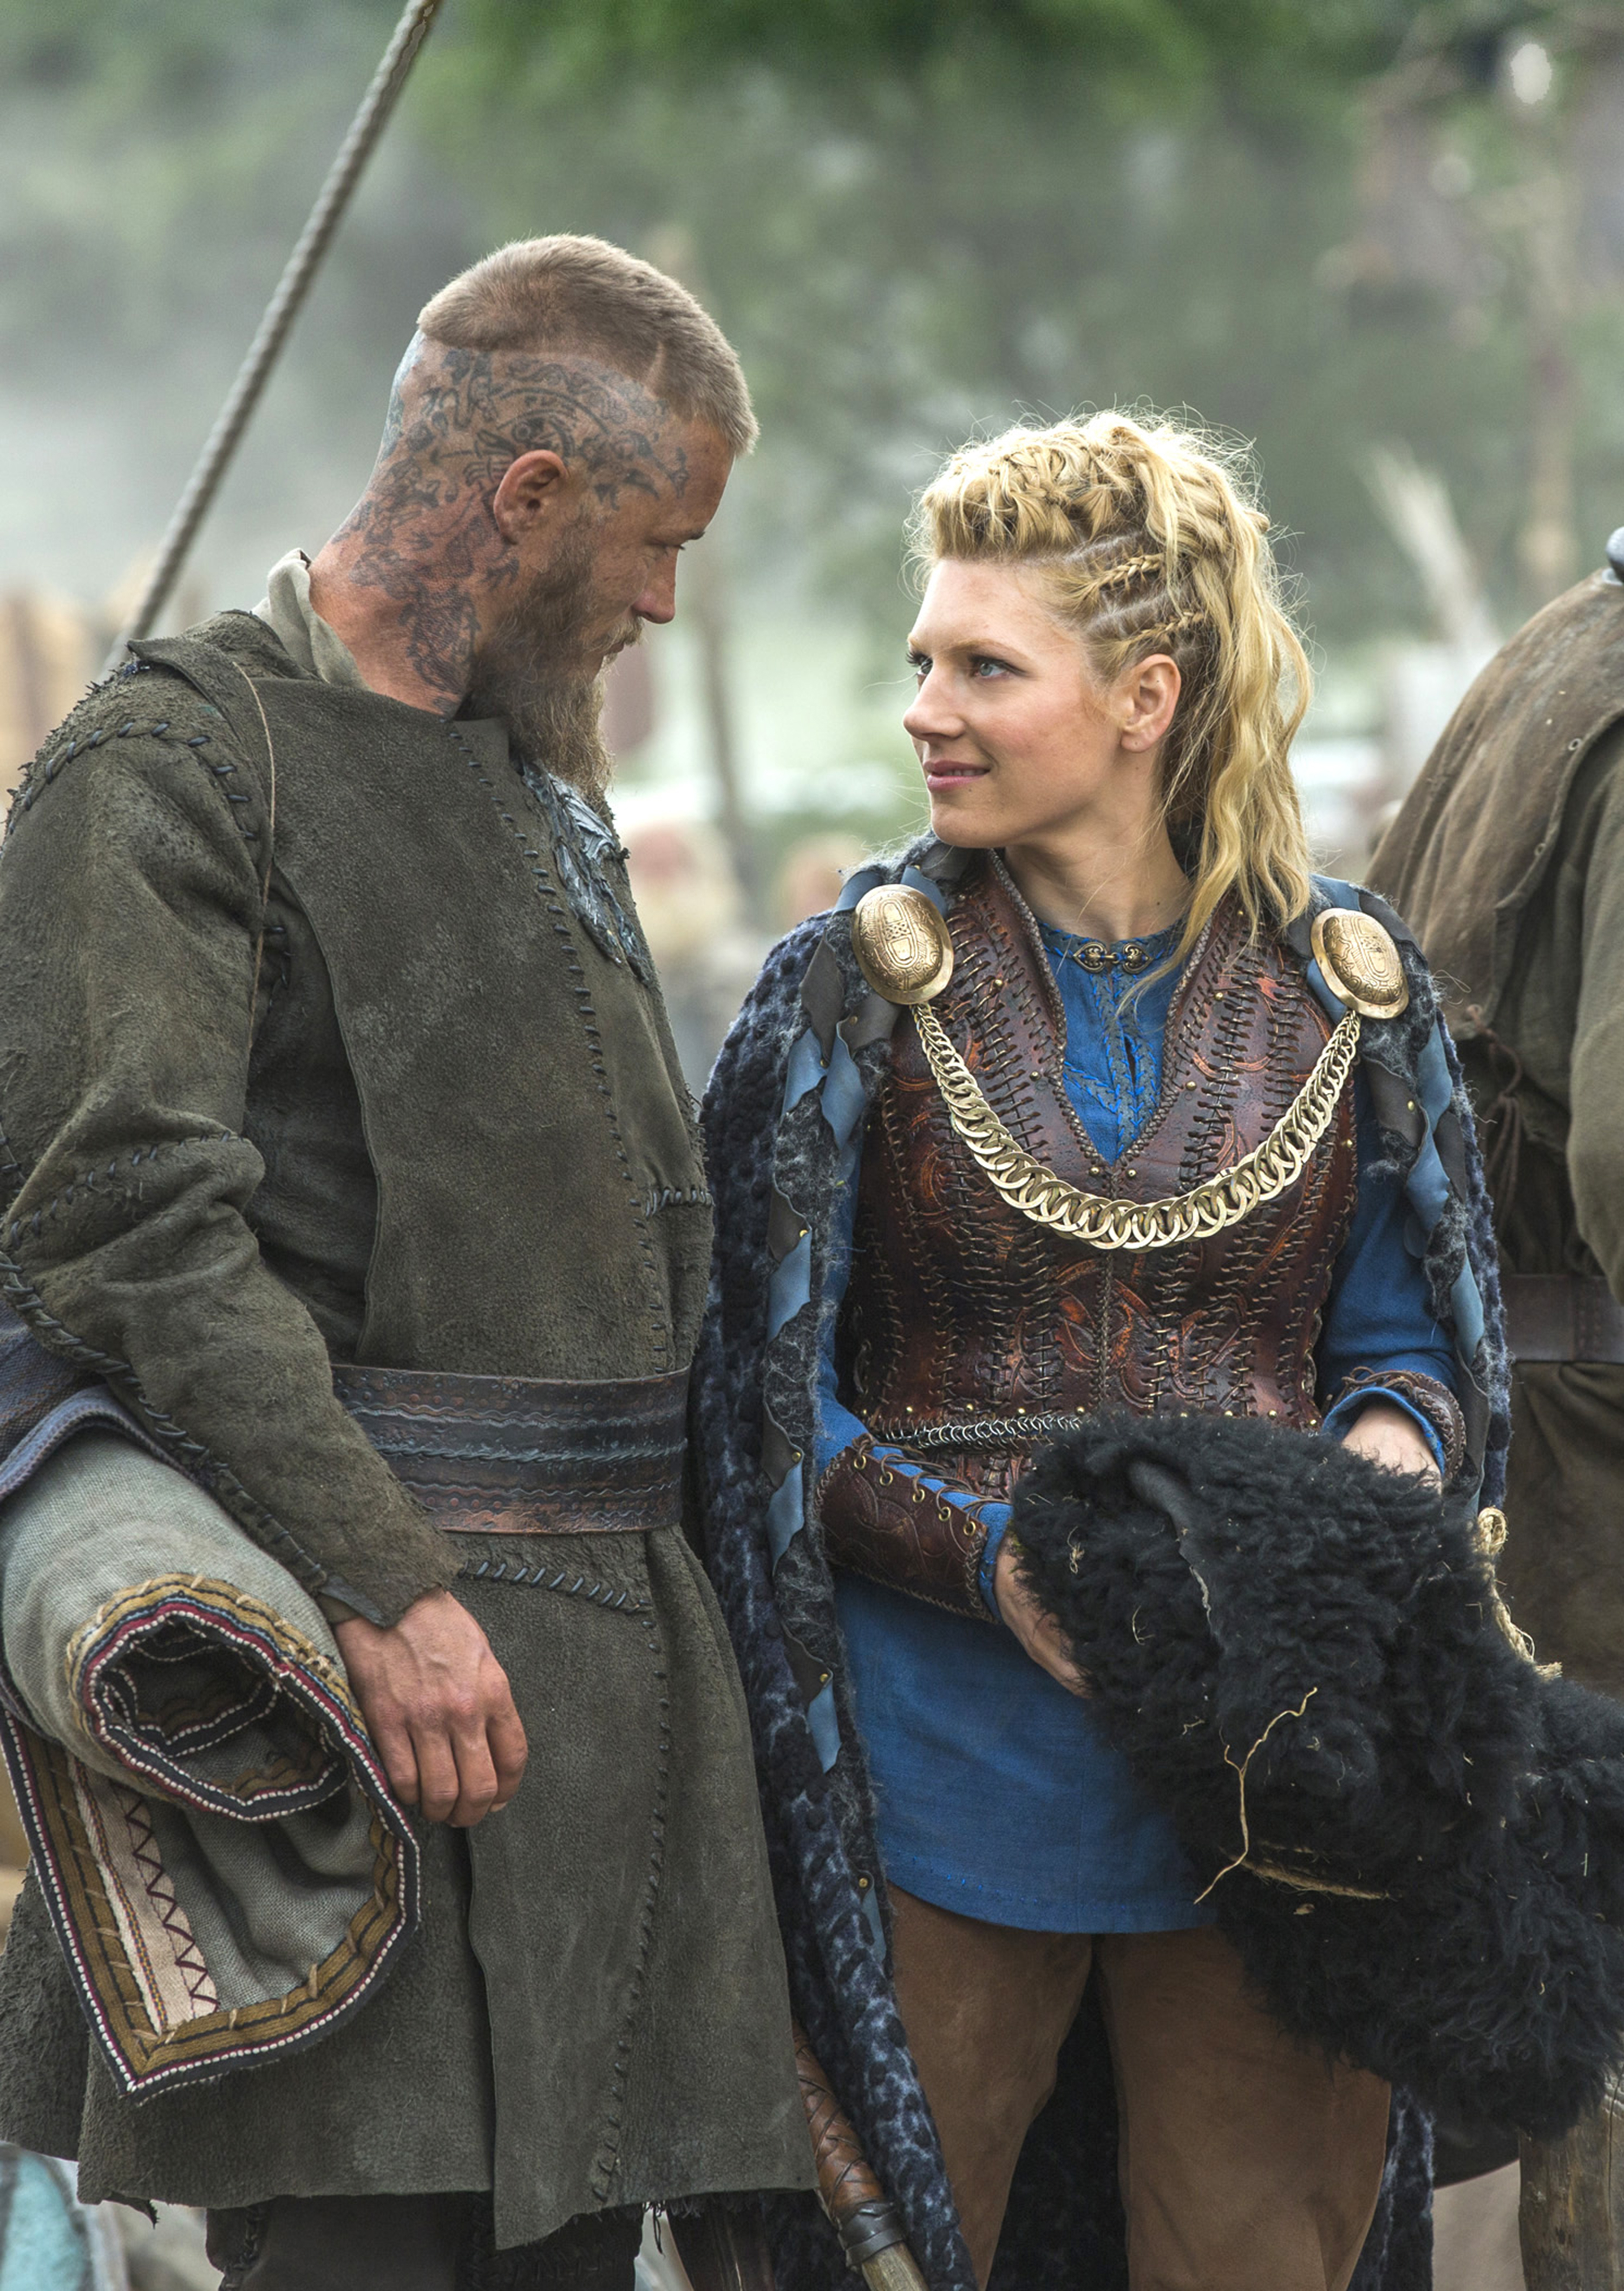 Schildmaid Kostüm History Channels 39vikings 39 Begins Third Season With